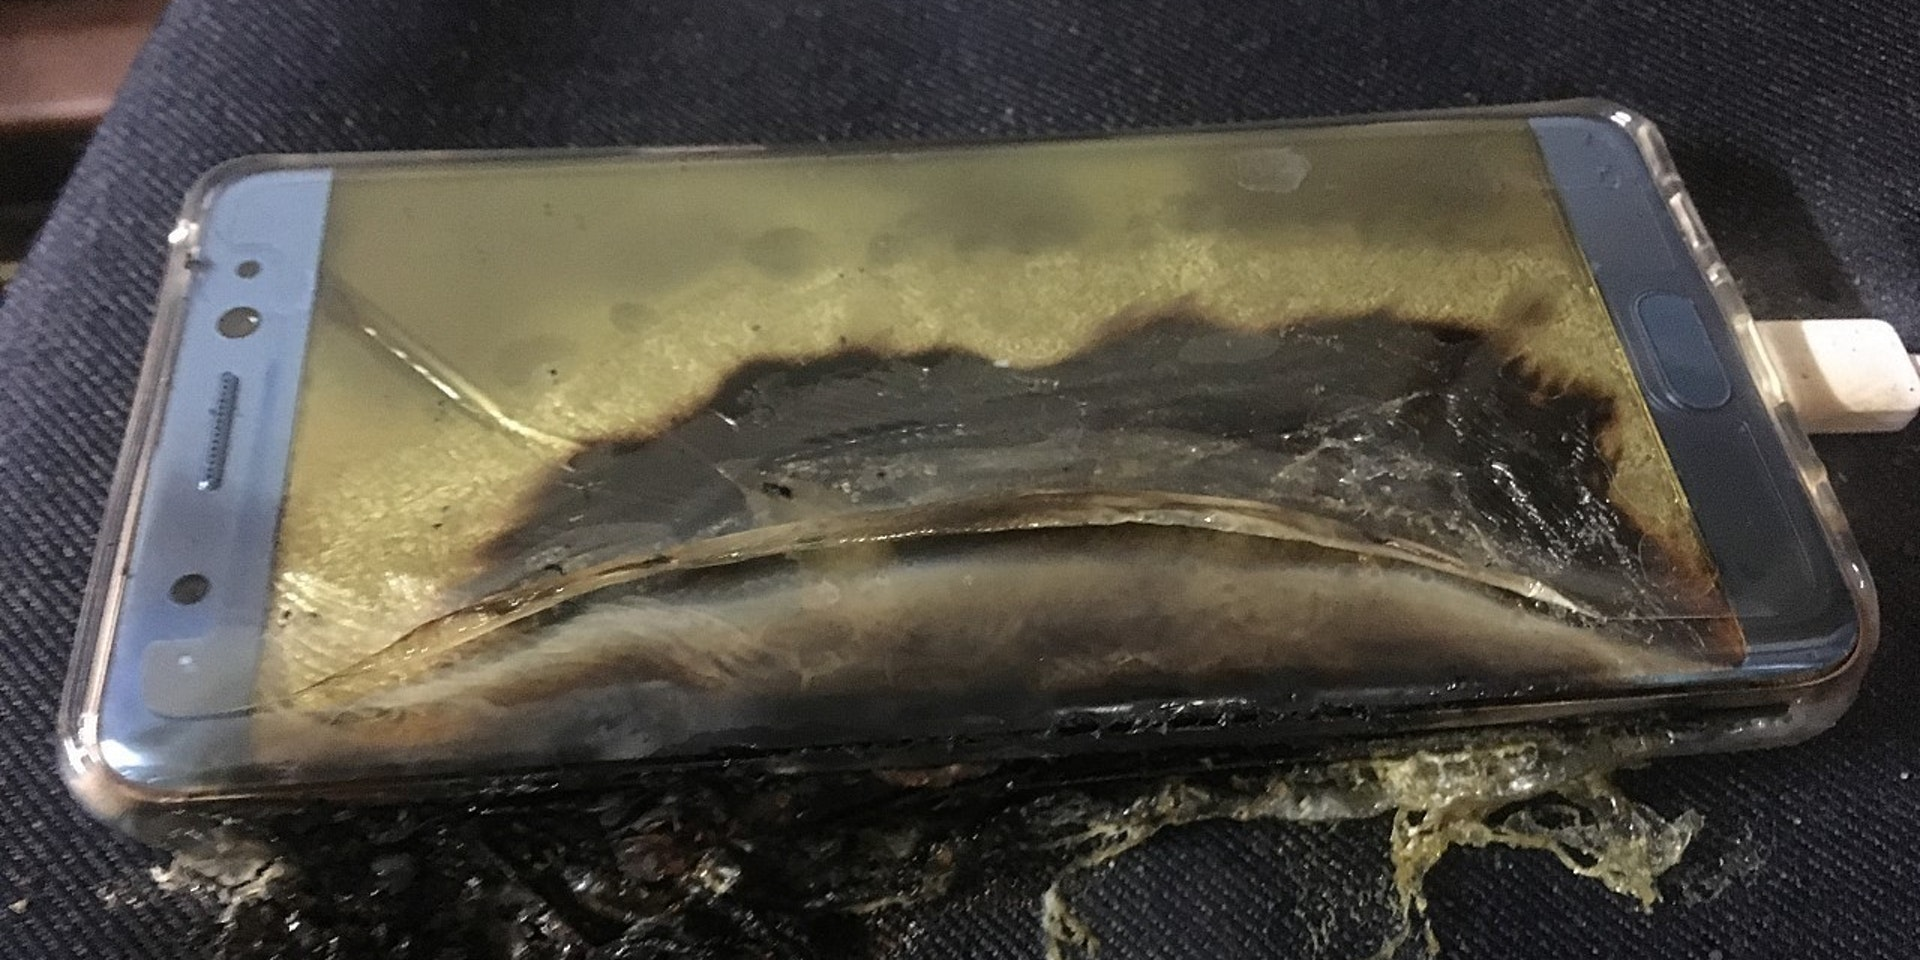 An exploded Galaxy Note 7, which has been recalled by Samsung.